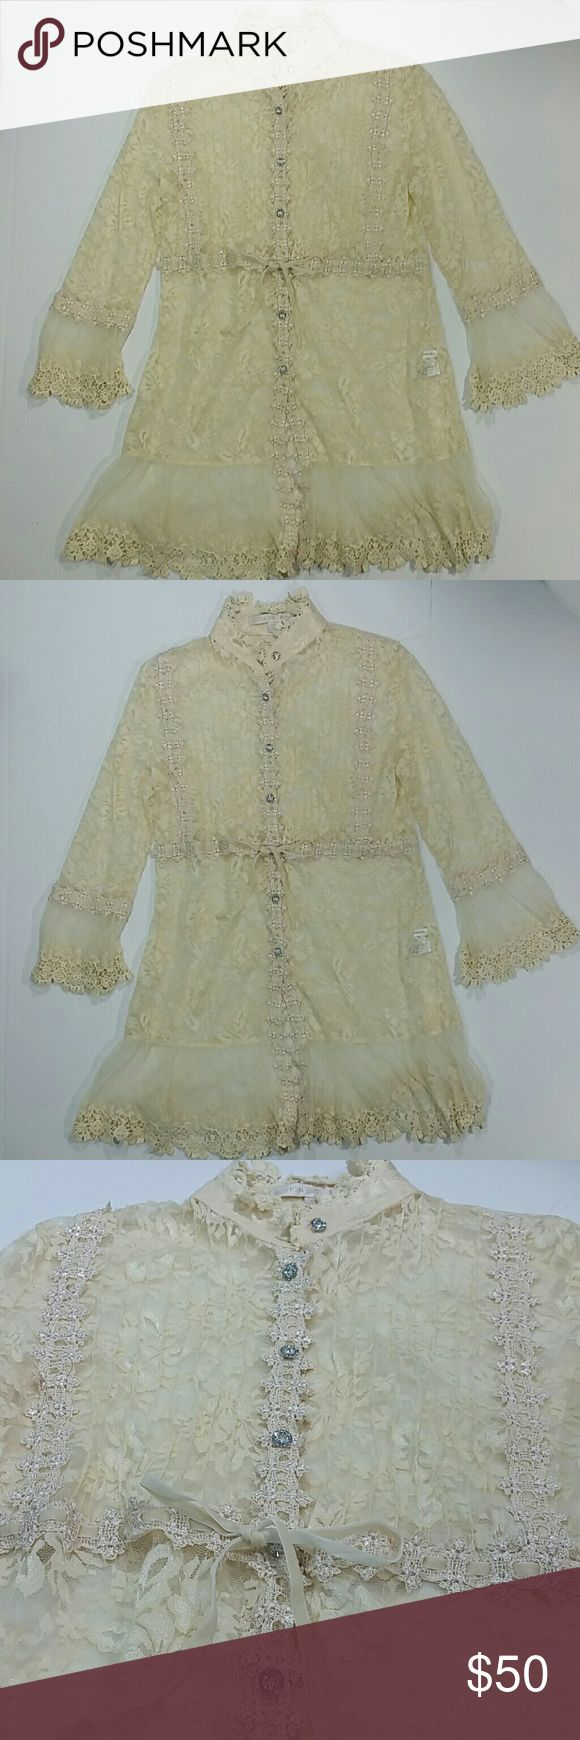 Boston Proper Shirt Lace Crochet Cardigan Top This is a gorgeous Boston Proper blouse shirt in size s small. This cardigan top is 100% polyester and is a cream color.  It has lace and crochet details, and jewel buttons down the front. There is also a ribbon that ties around the middle and is duster length. The body has some stretch to it. The peplum sleeves are 3/4 length. It has an elegant vintage Victorian look to it. It is used, but in good condition- signs of wear may be seen by photos…